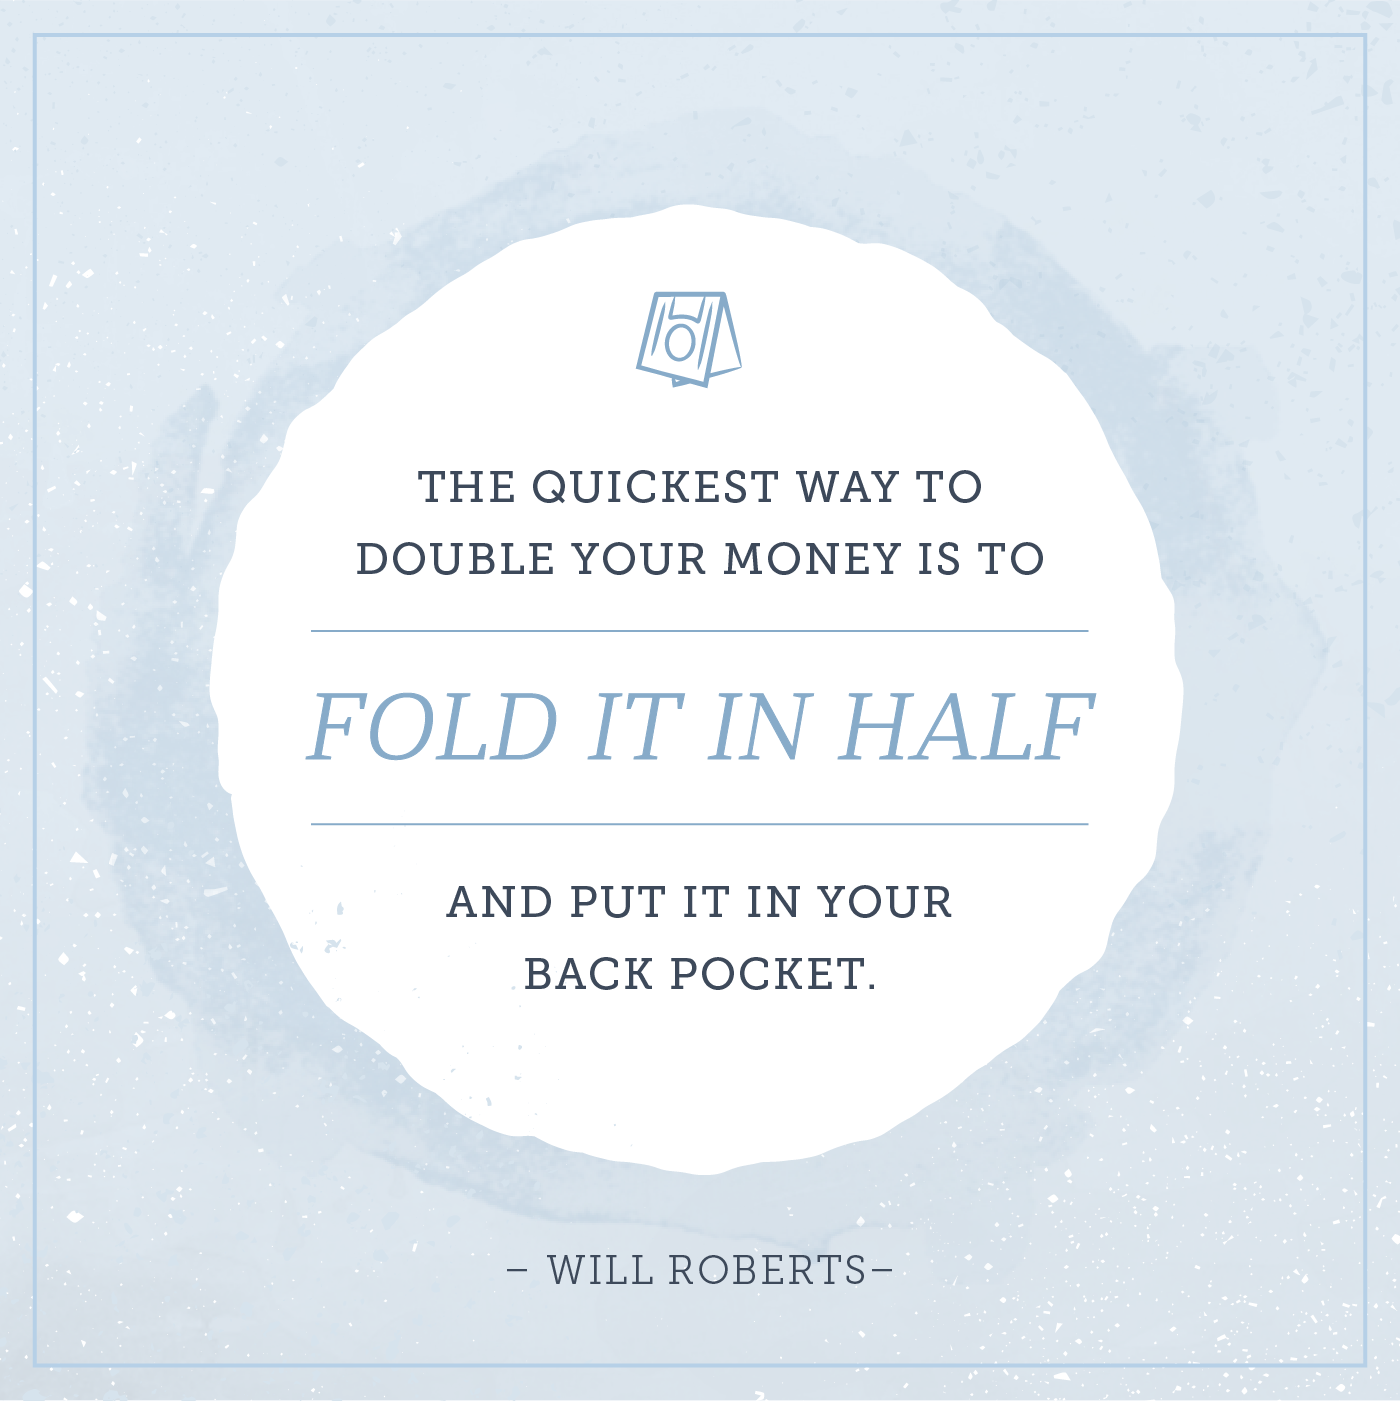 the quickest way to double your money is to fold it in half and put it back in your pocket